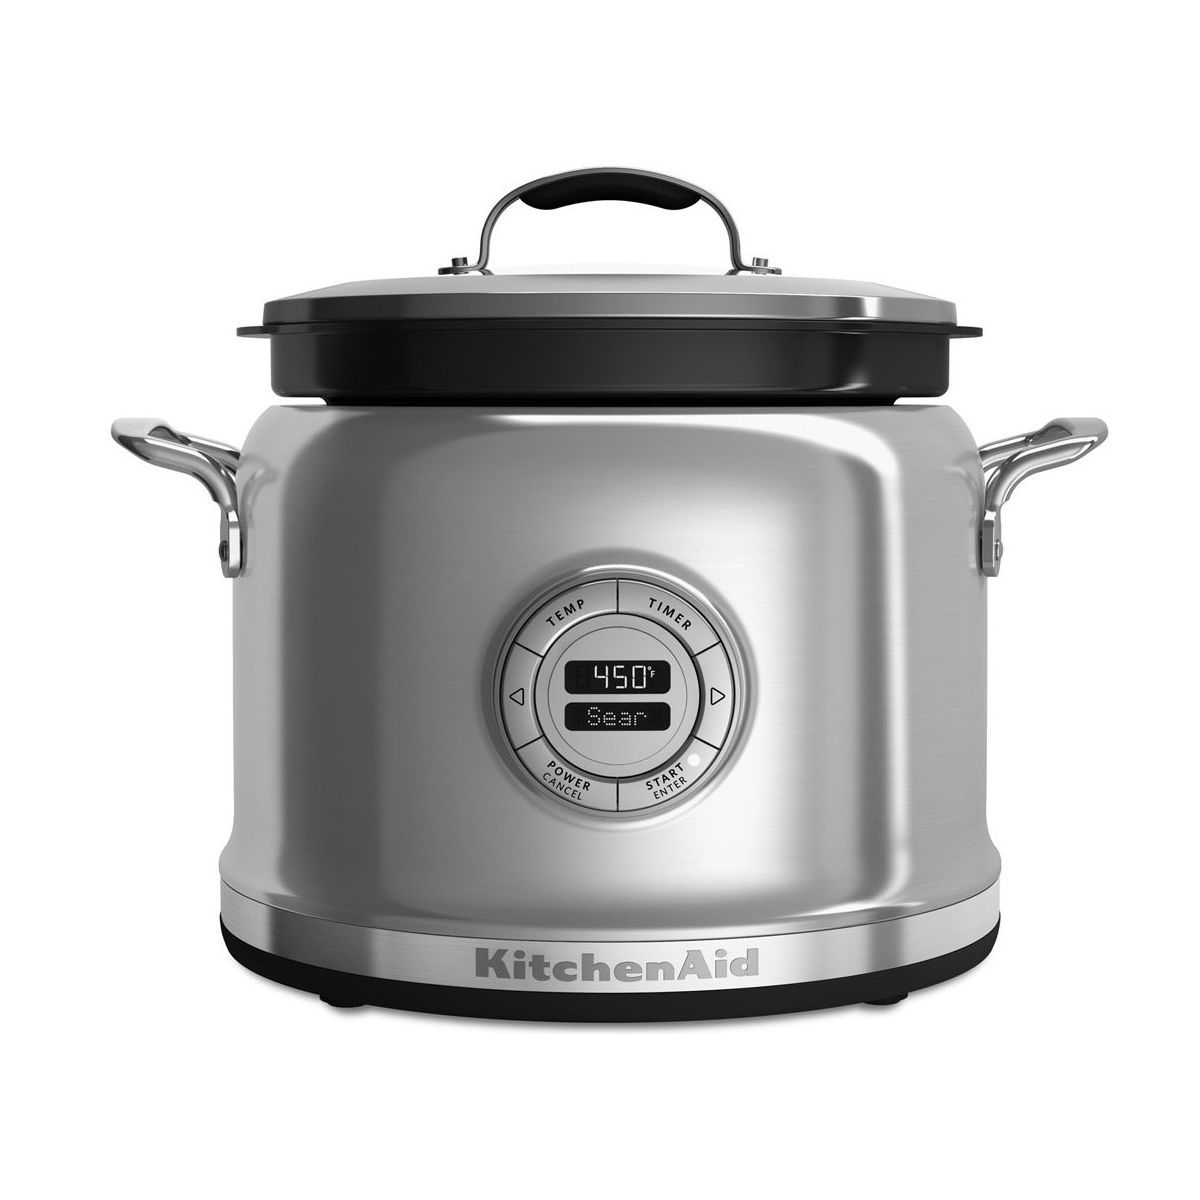 Houzz KitchenAid stainless steel multi-cooker photo